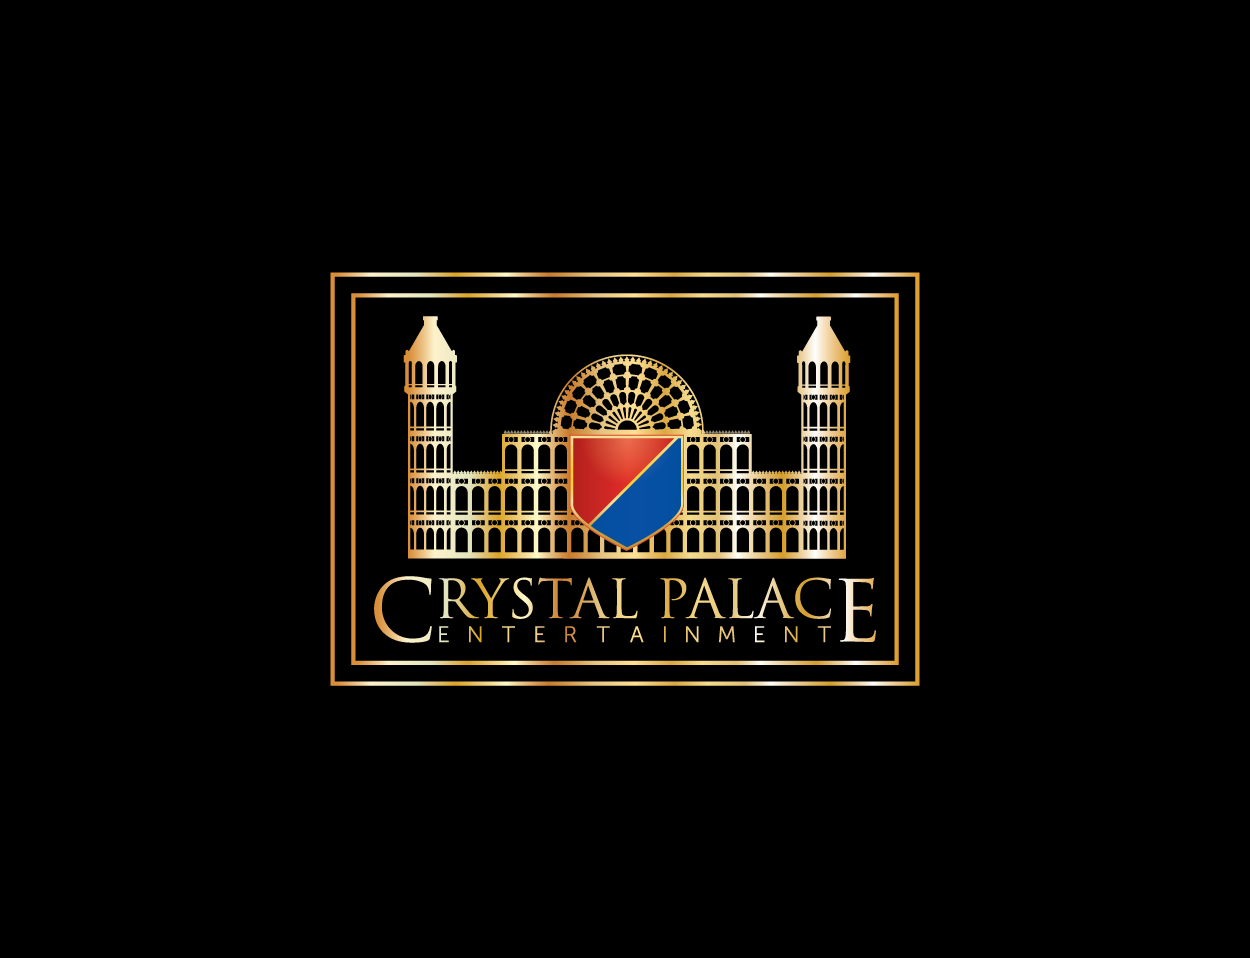 Help Crystal Palace Entertainment with a new logo